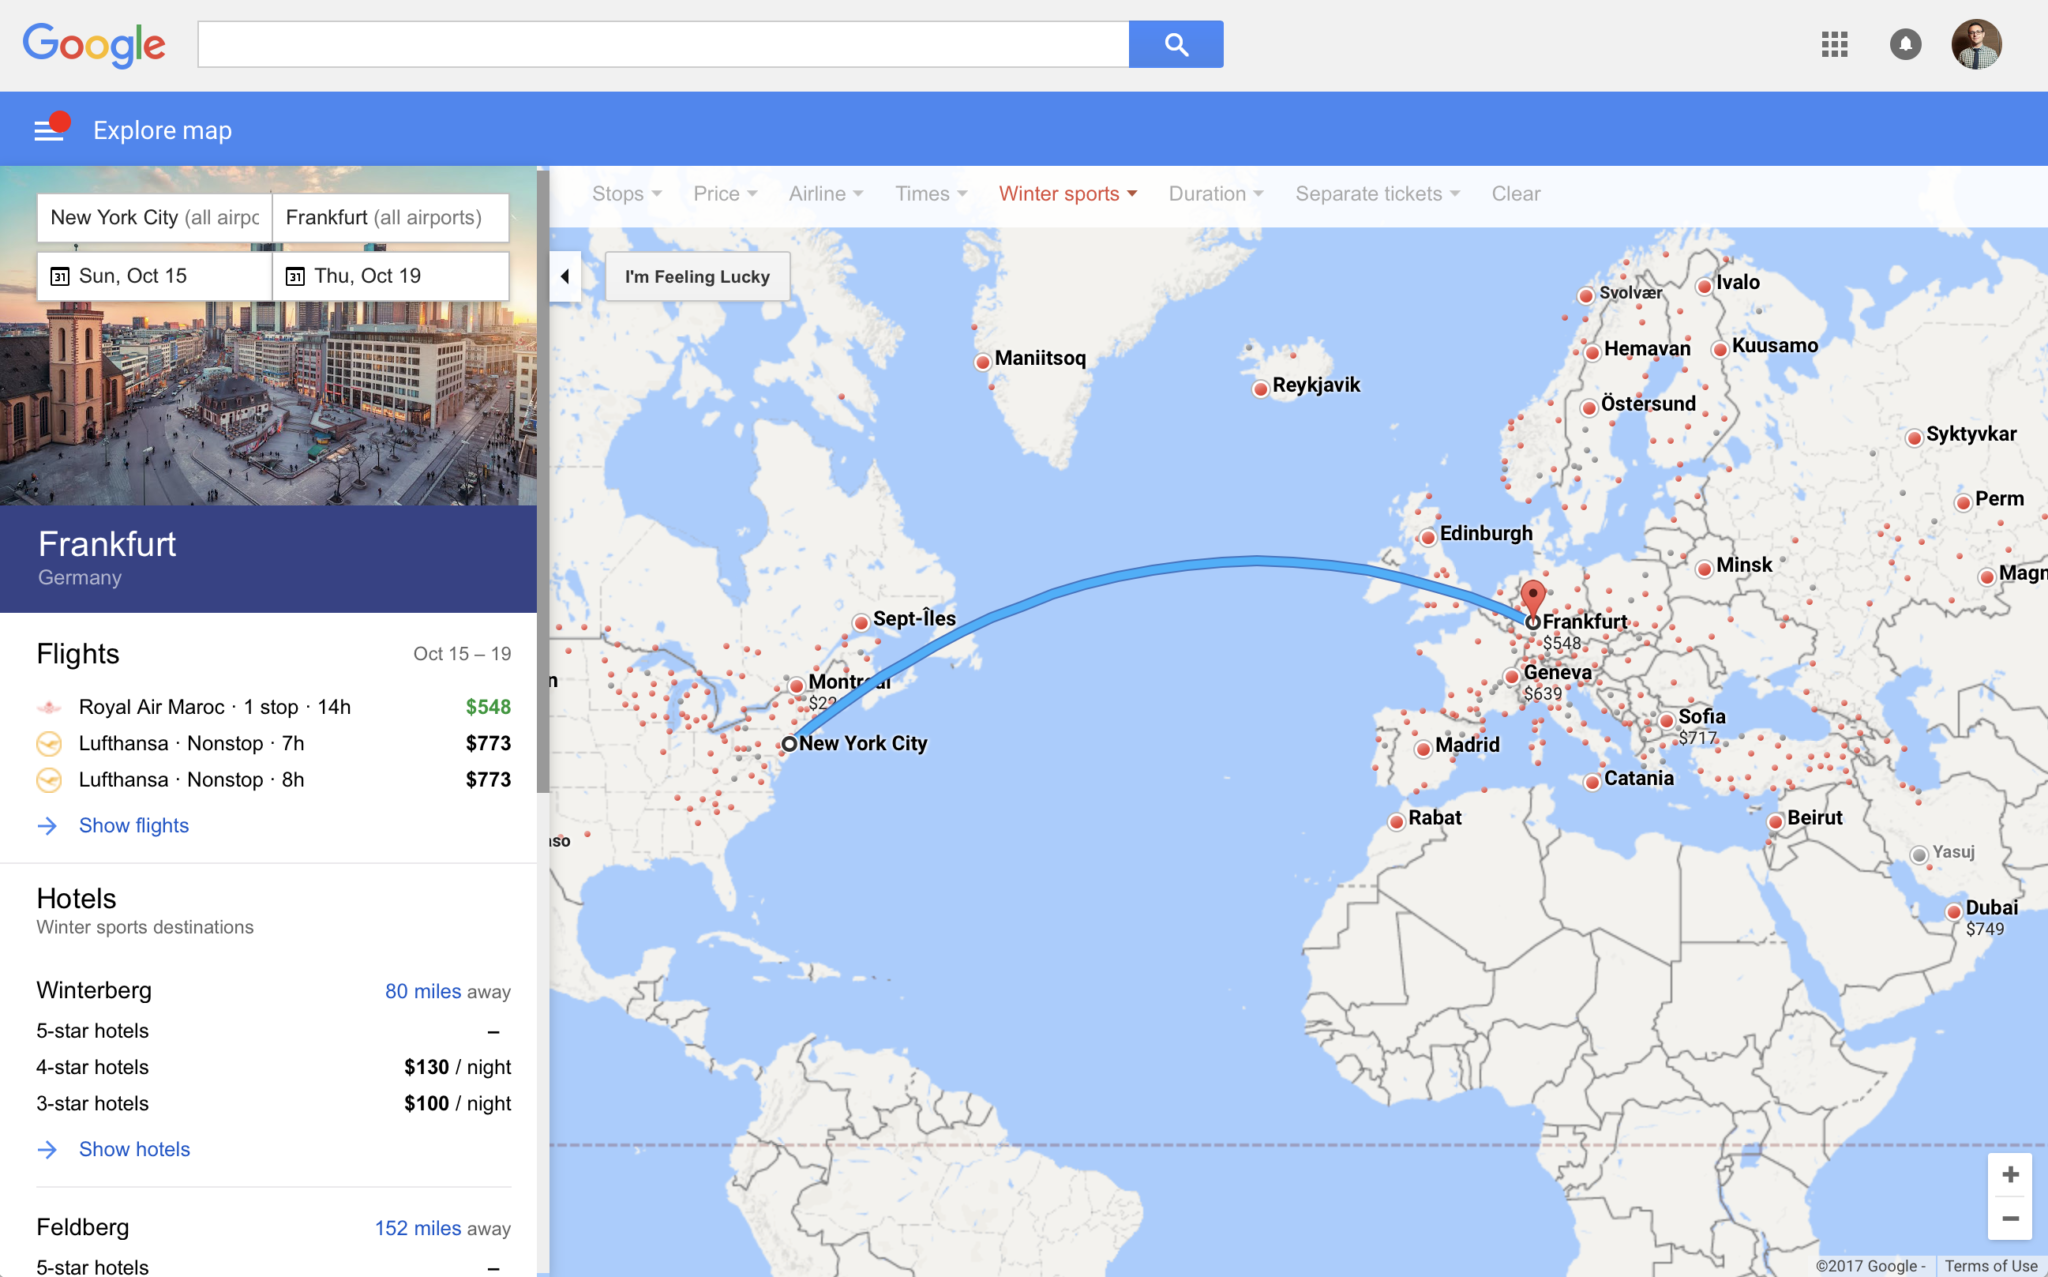 How To Use Google Flights To Track & Find Cheap Prices [Guide]